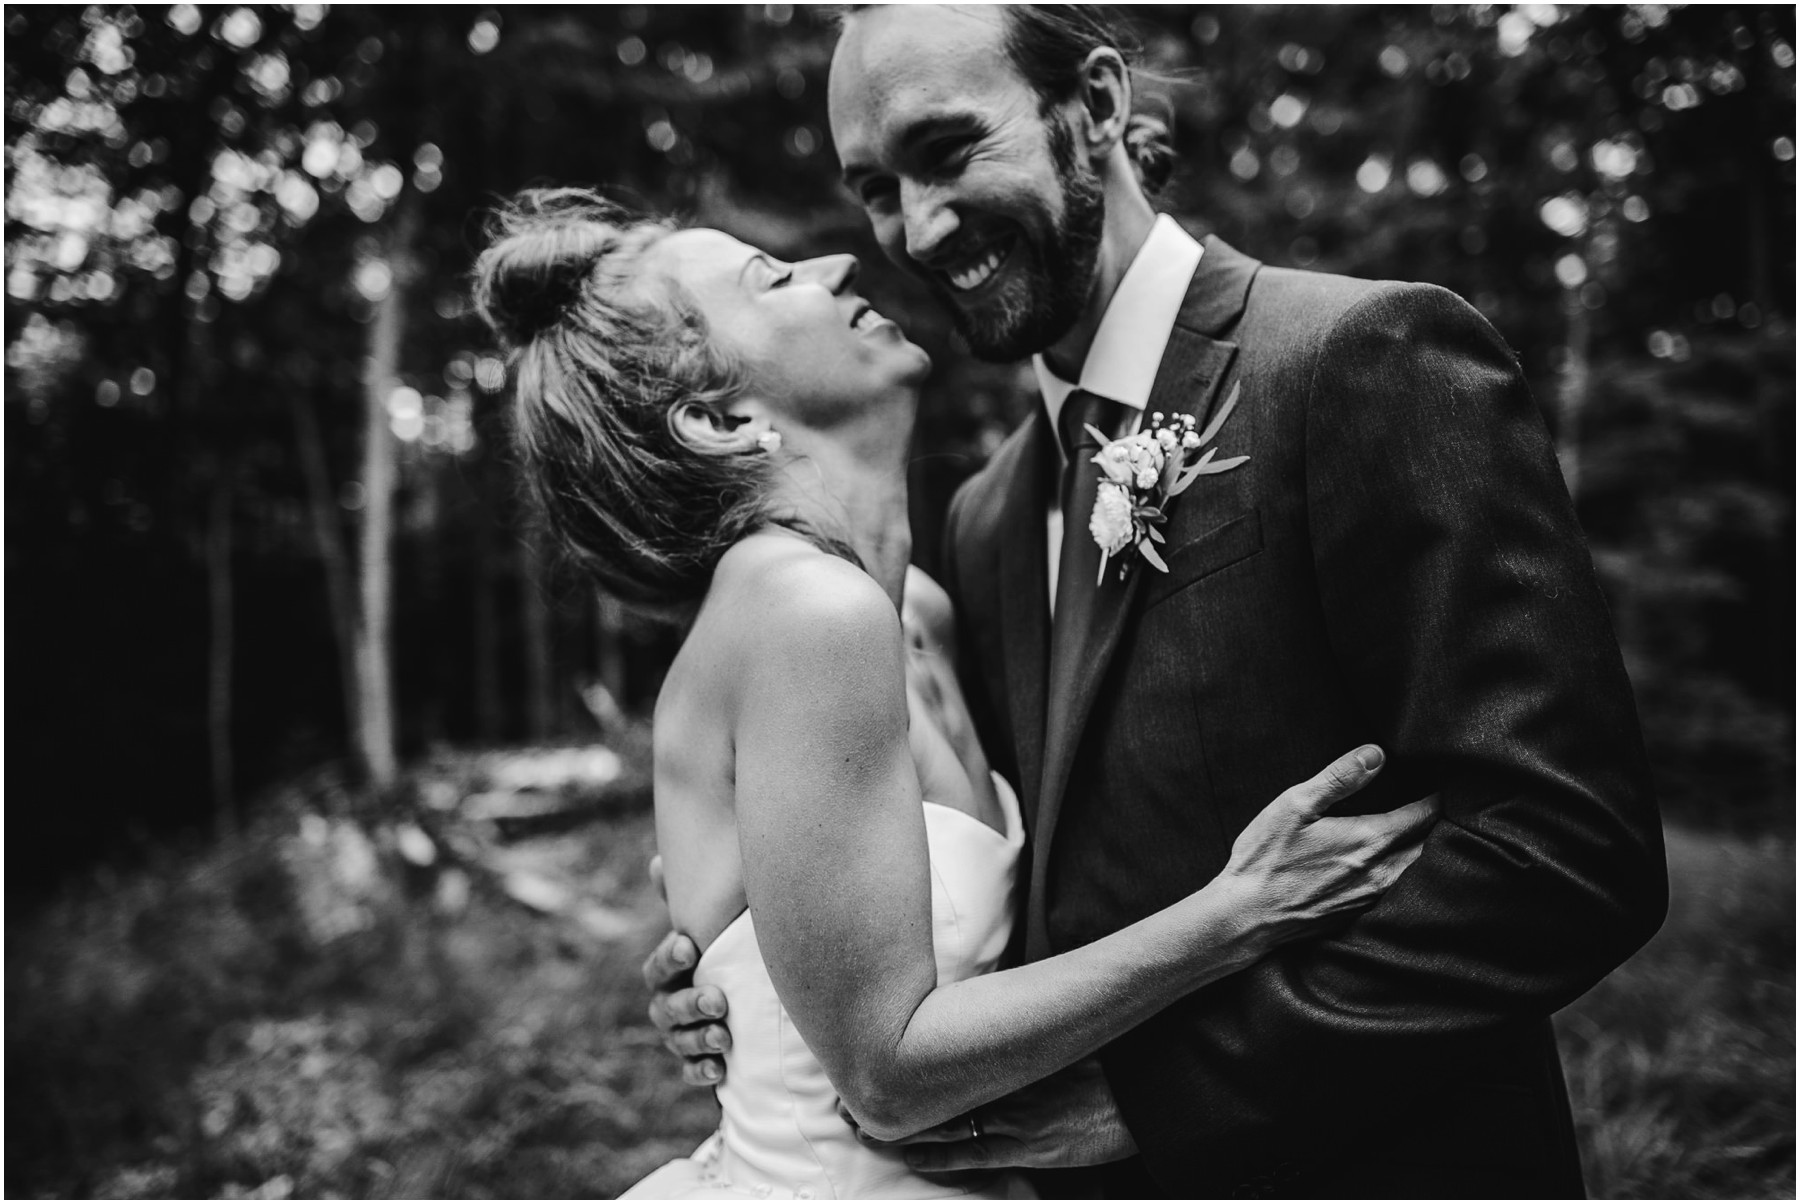 candid black and white wedding photograph